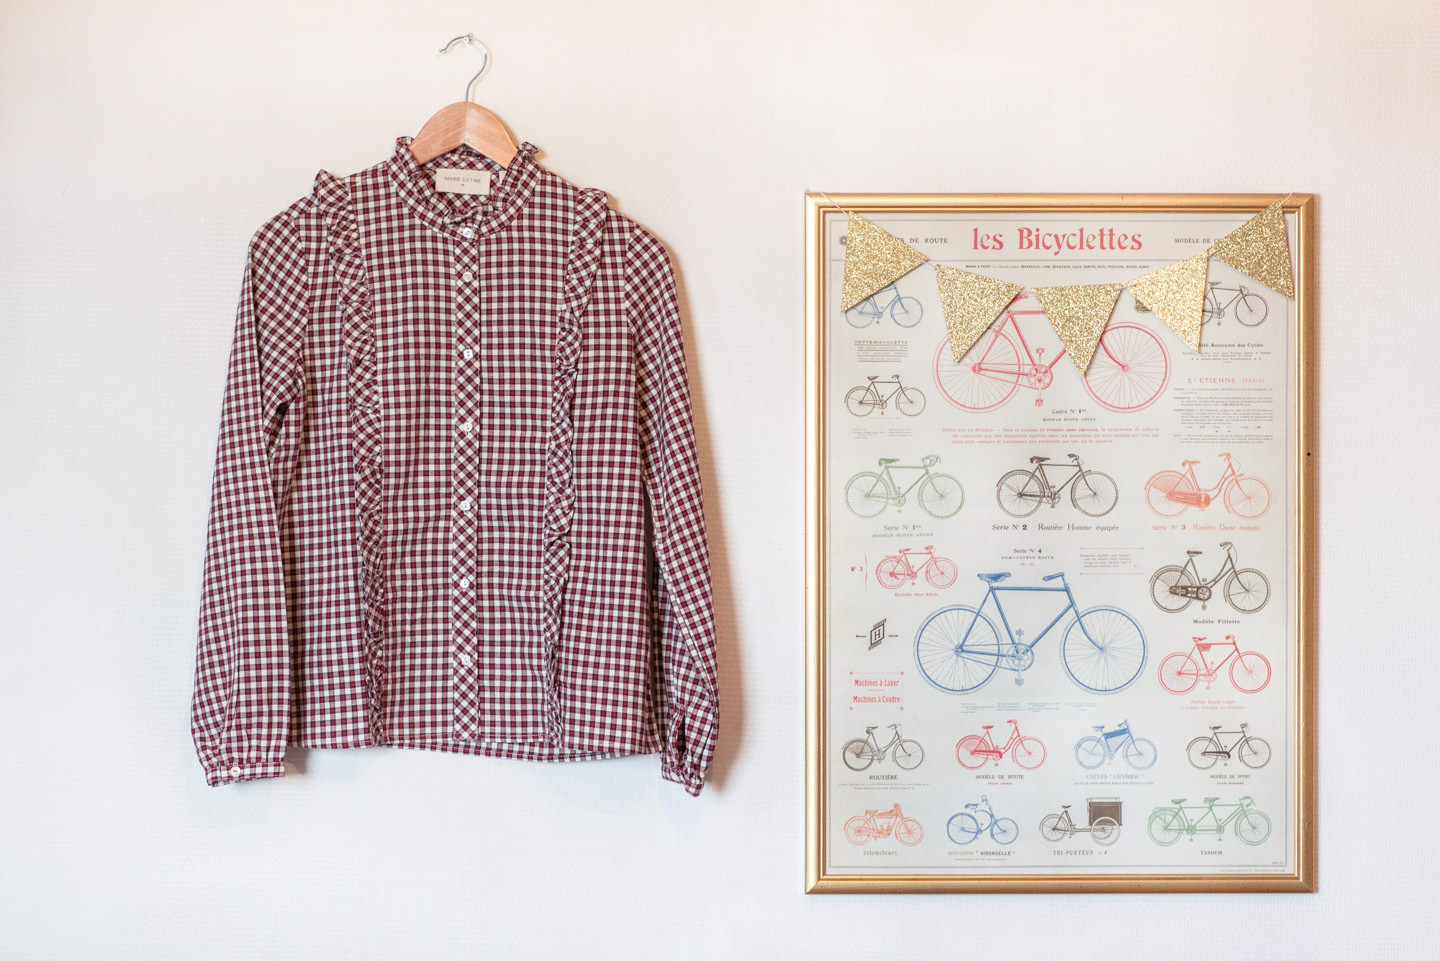 Blog-Mode-And-The-City-Lifestyle-Cinq-Petites-Choses-234-chemise-marie-sixtine